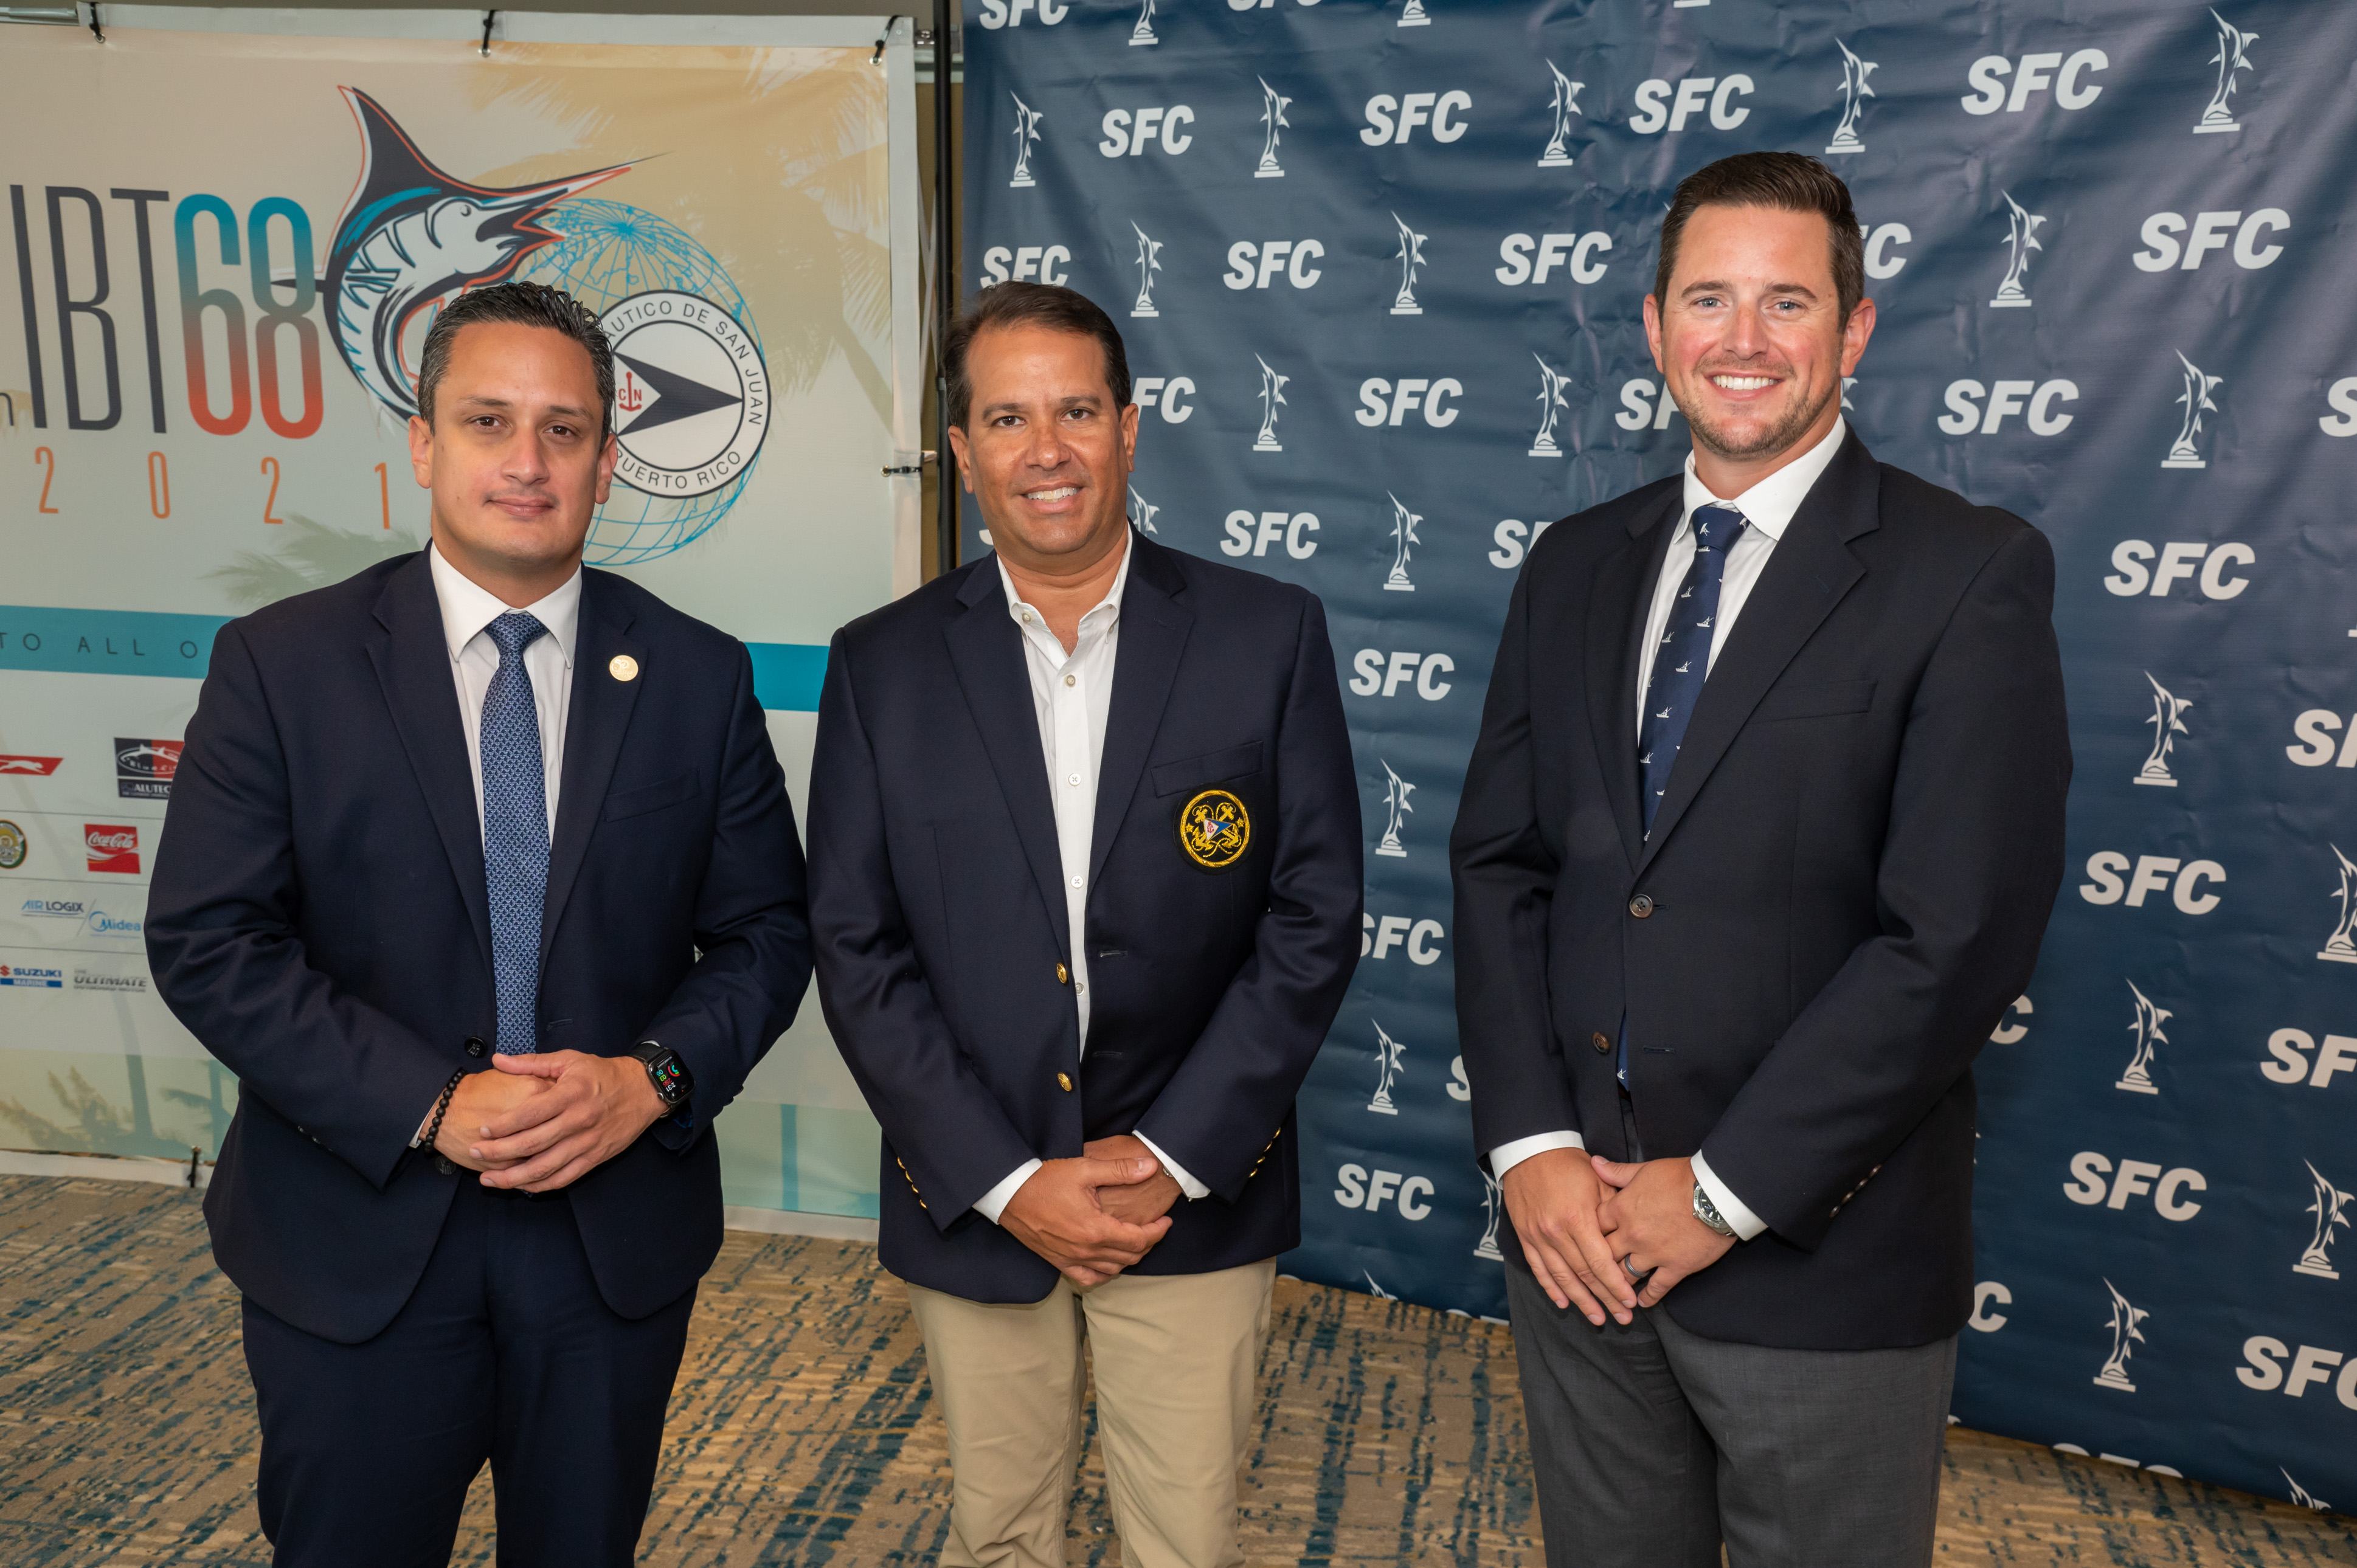 08.16.21 press conference for the CNSJ 68thIBT - 68th International Billfish Tournament , which runs from August 17 - 21, 2021. Left to right: Secretary of the Puerto Rico Tourism Department, Carlos mercado, IBT Chairman, Roger Casellas and Mark Neifeld.